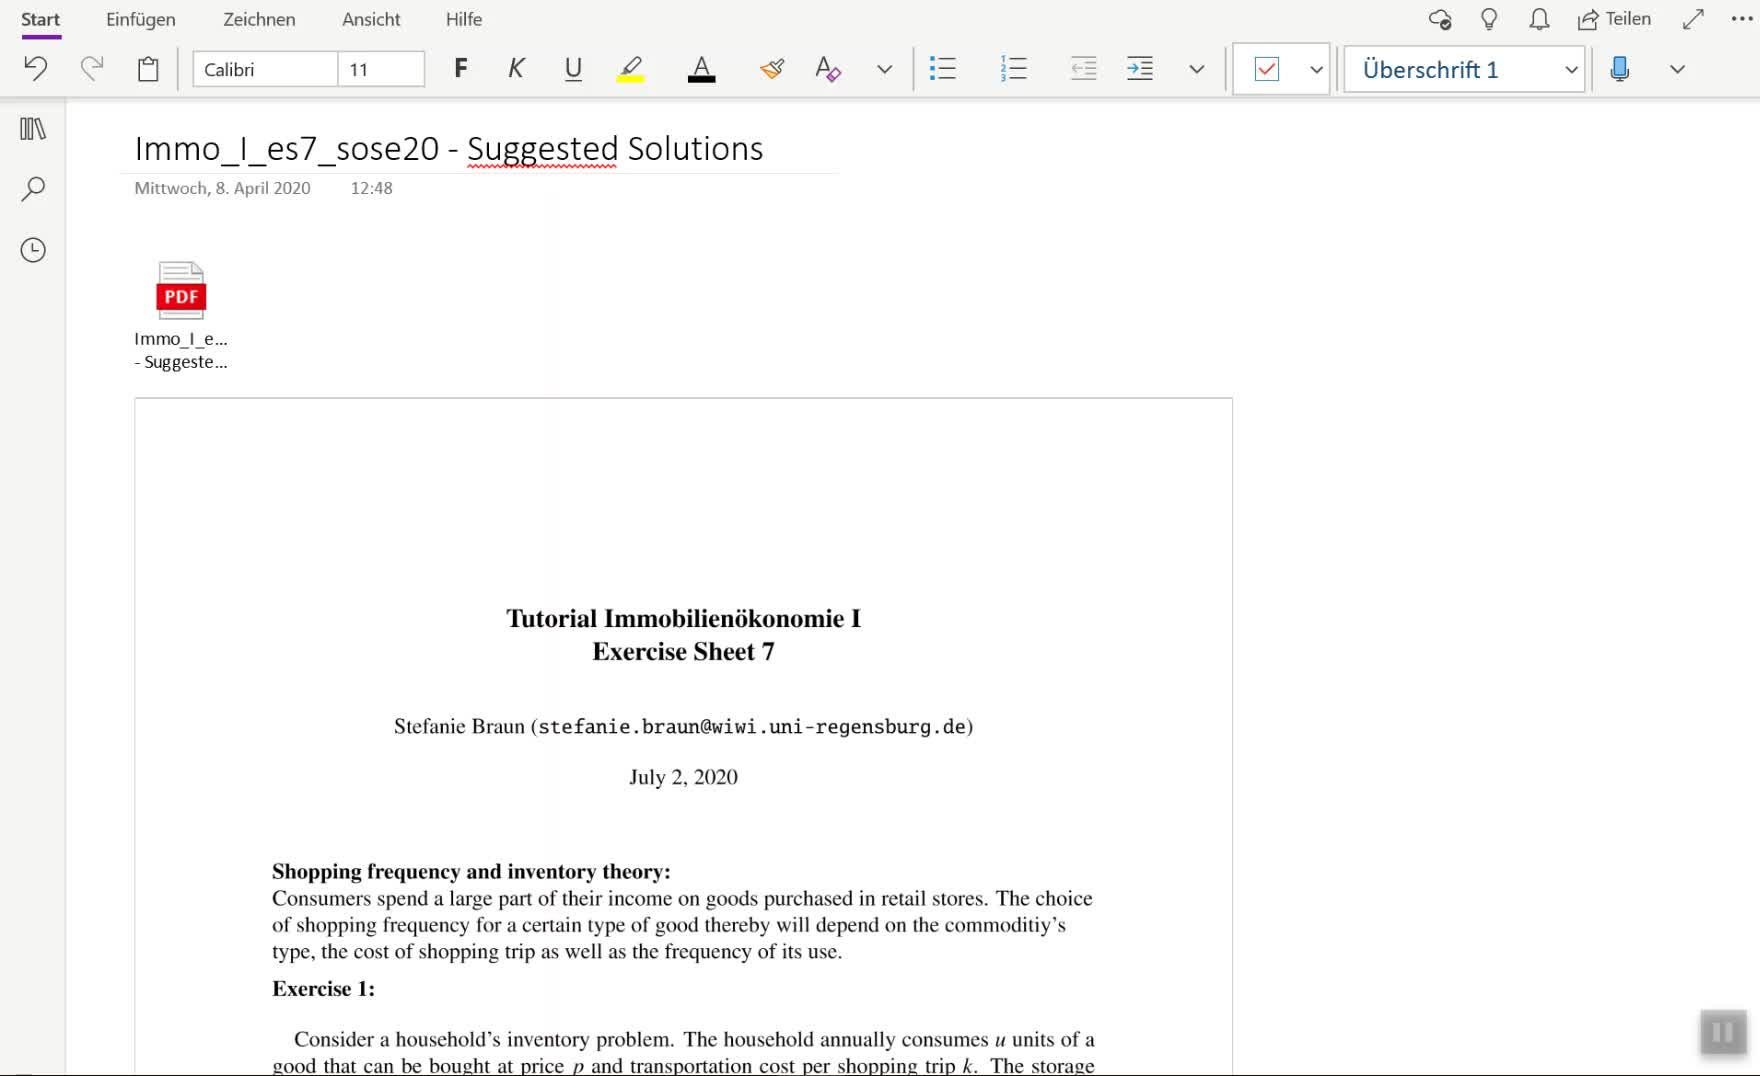 Screencast Exercise Sheet 7